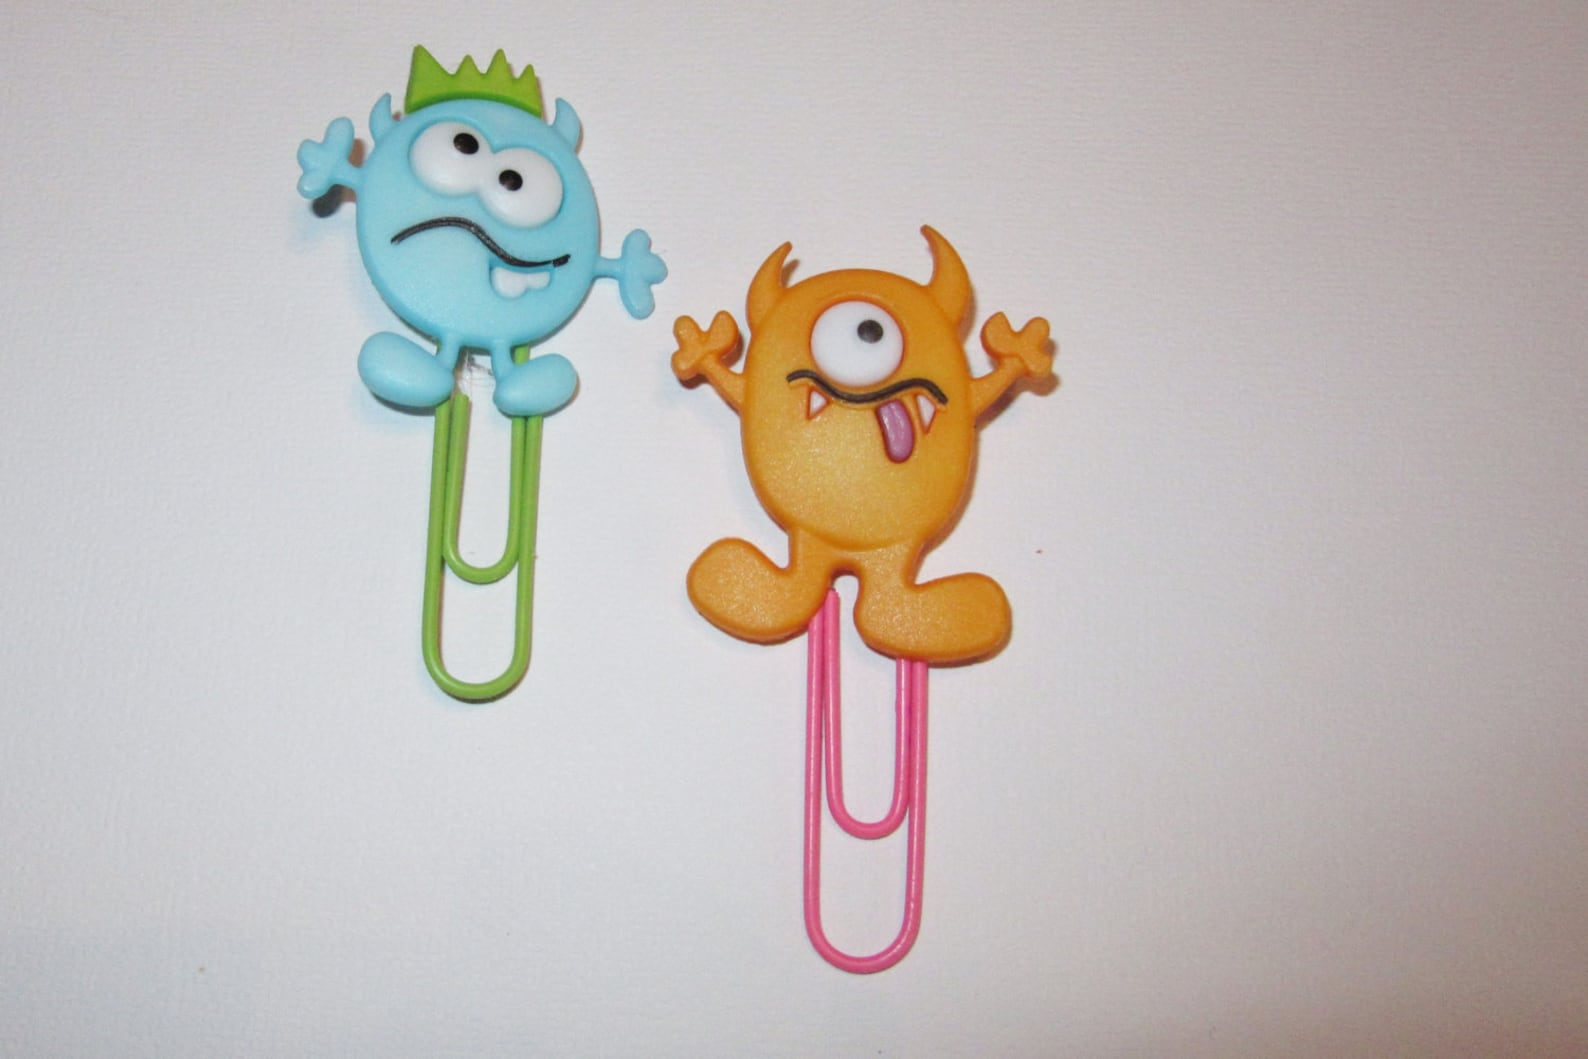 Two paperclip monster bookmarks against a white background.